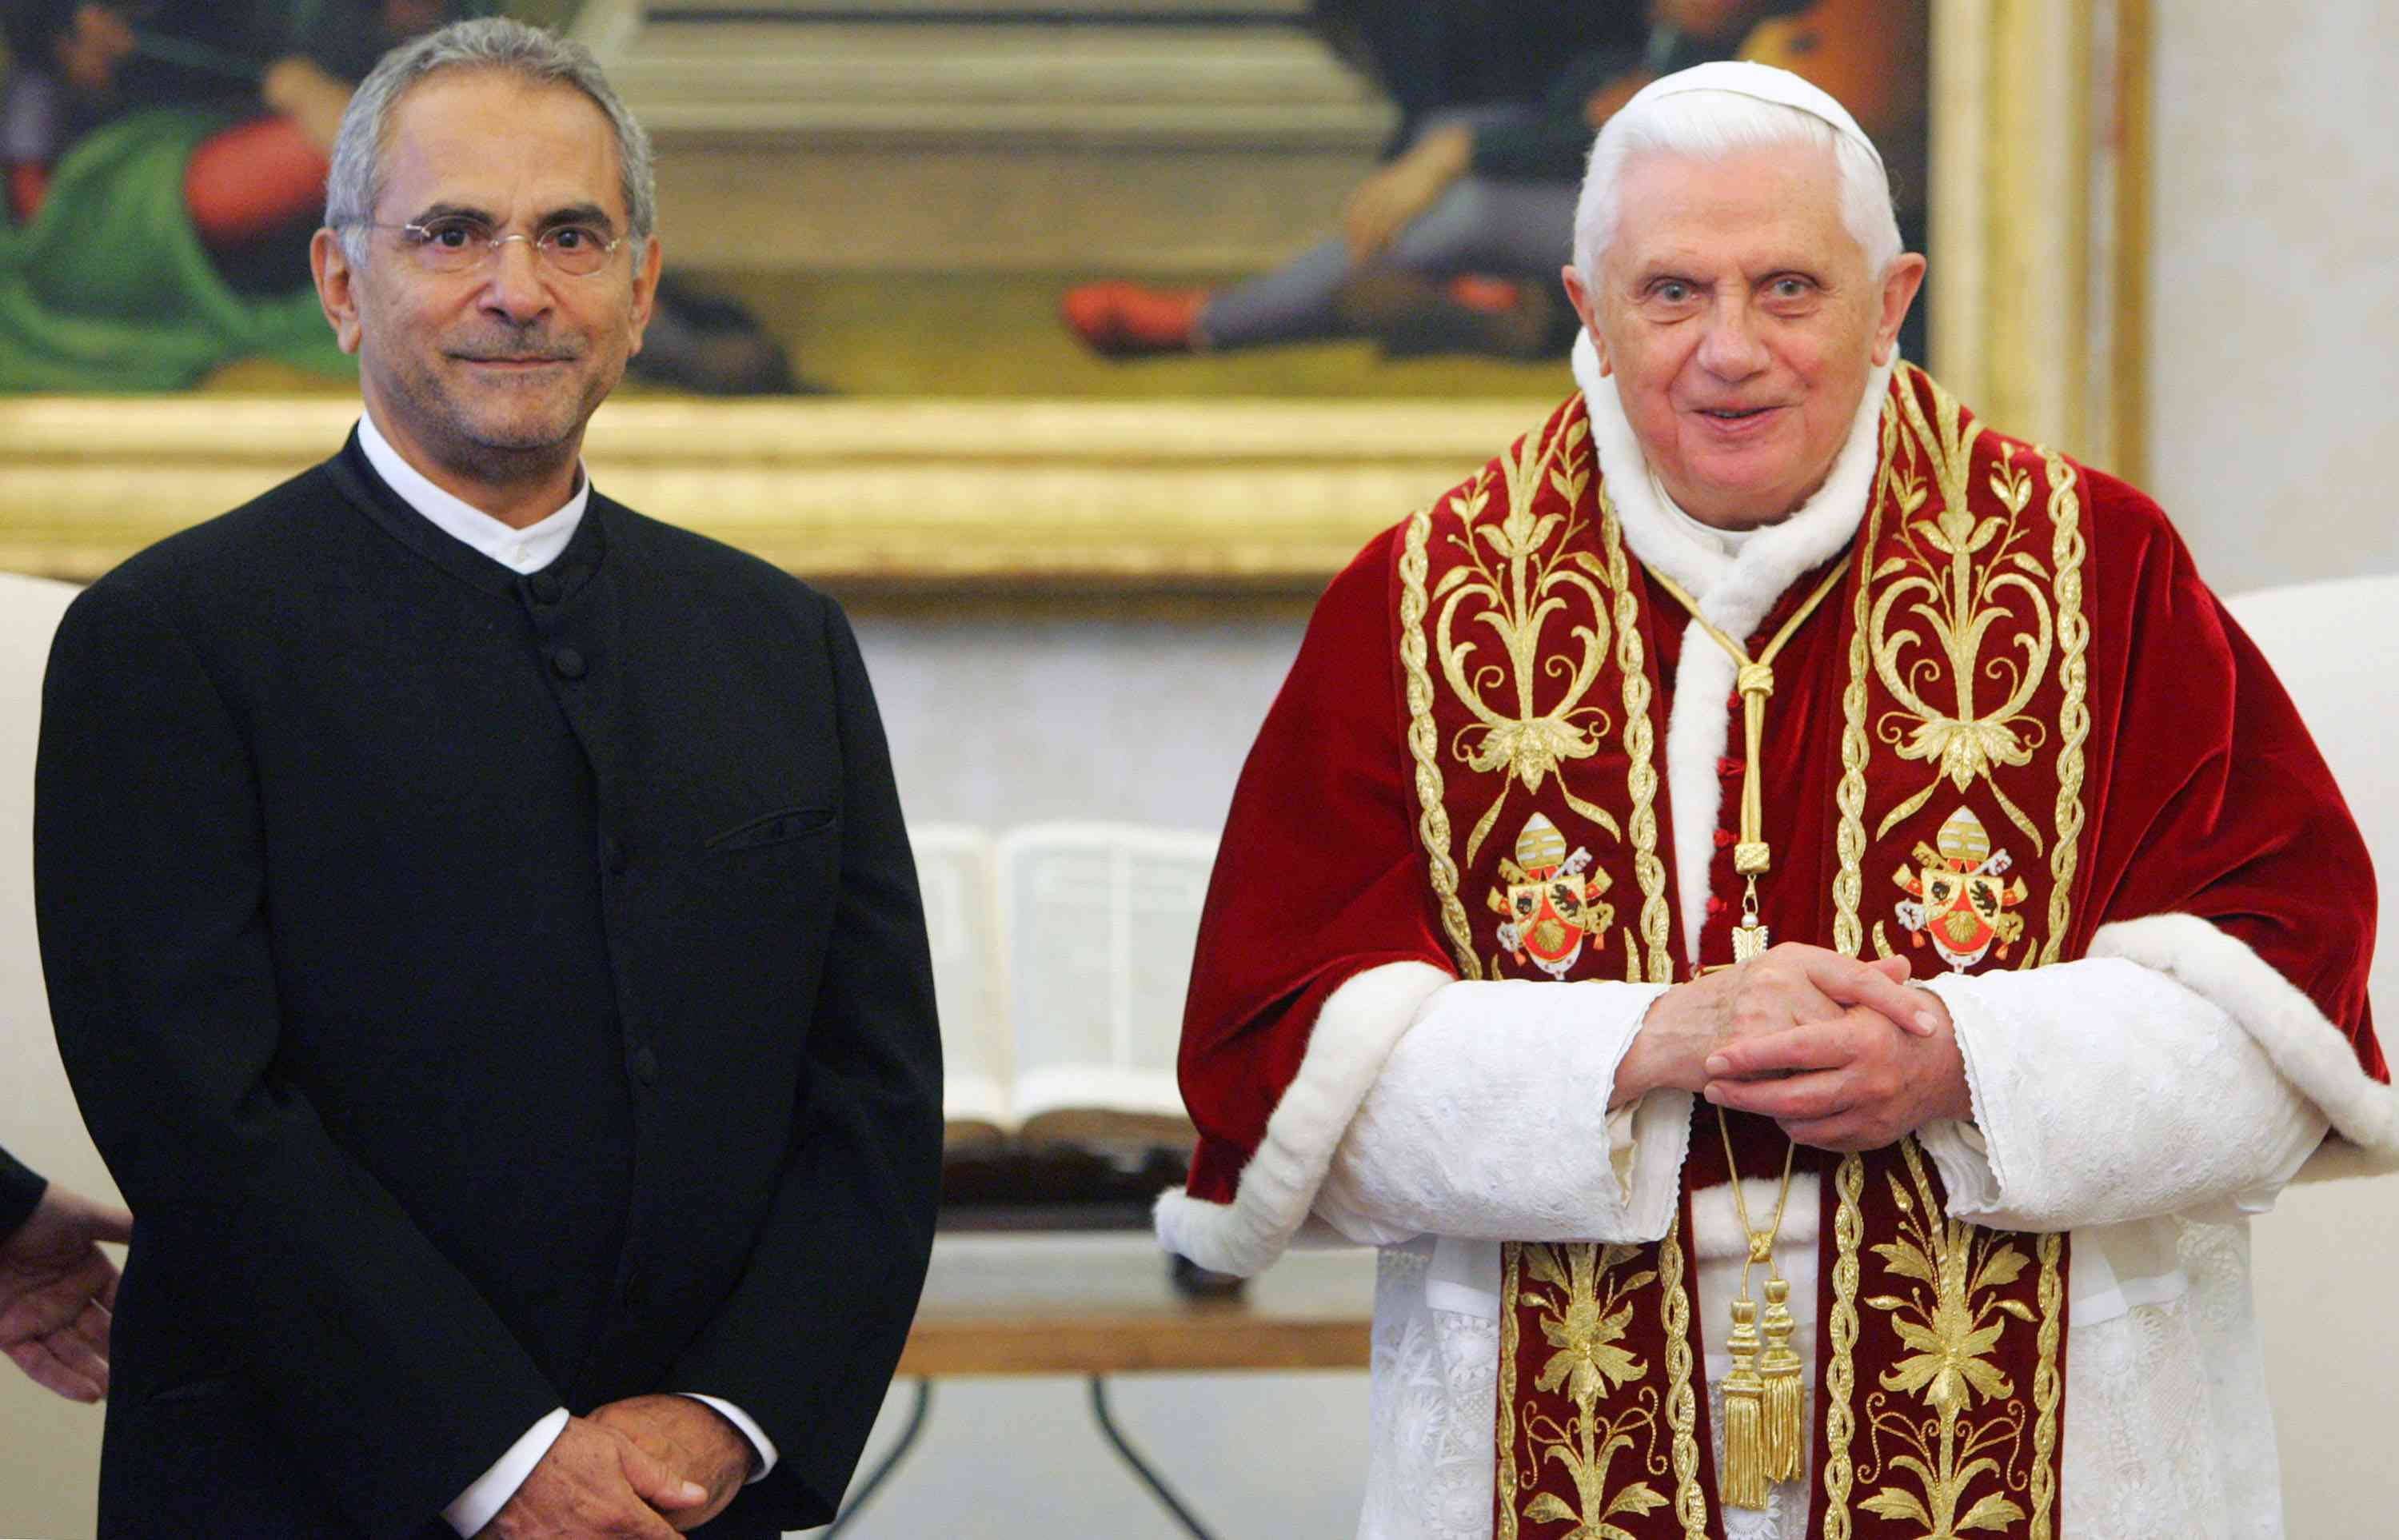 The Pope Meets with East Timor President Jose Ramos-Horta